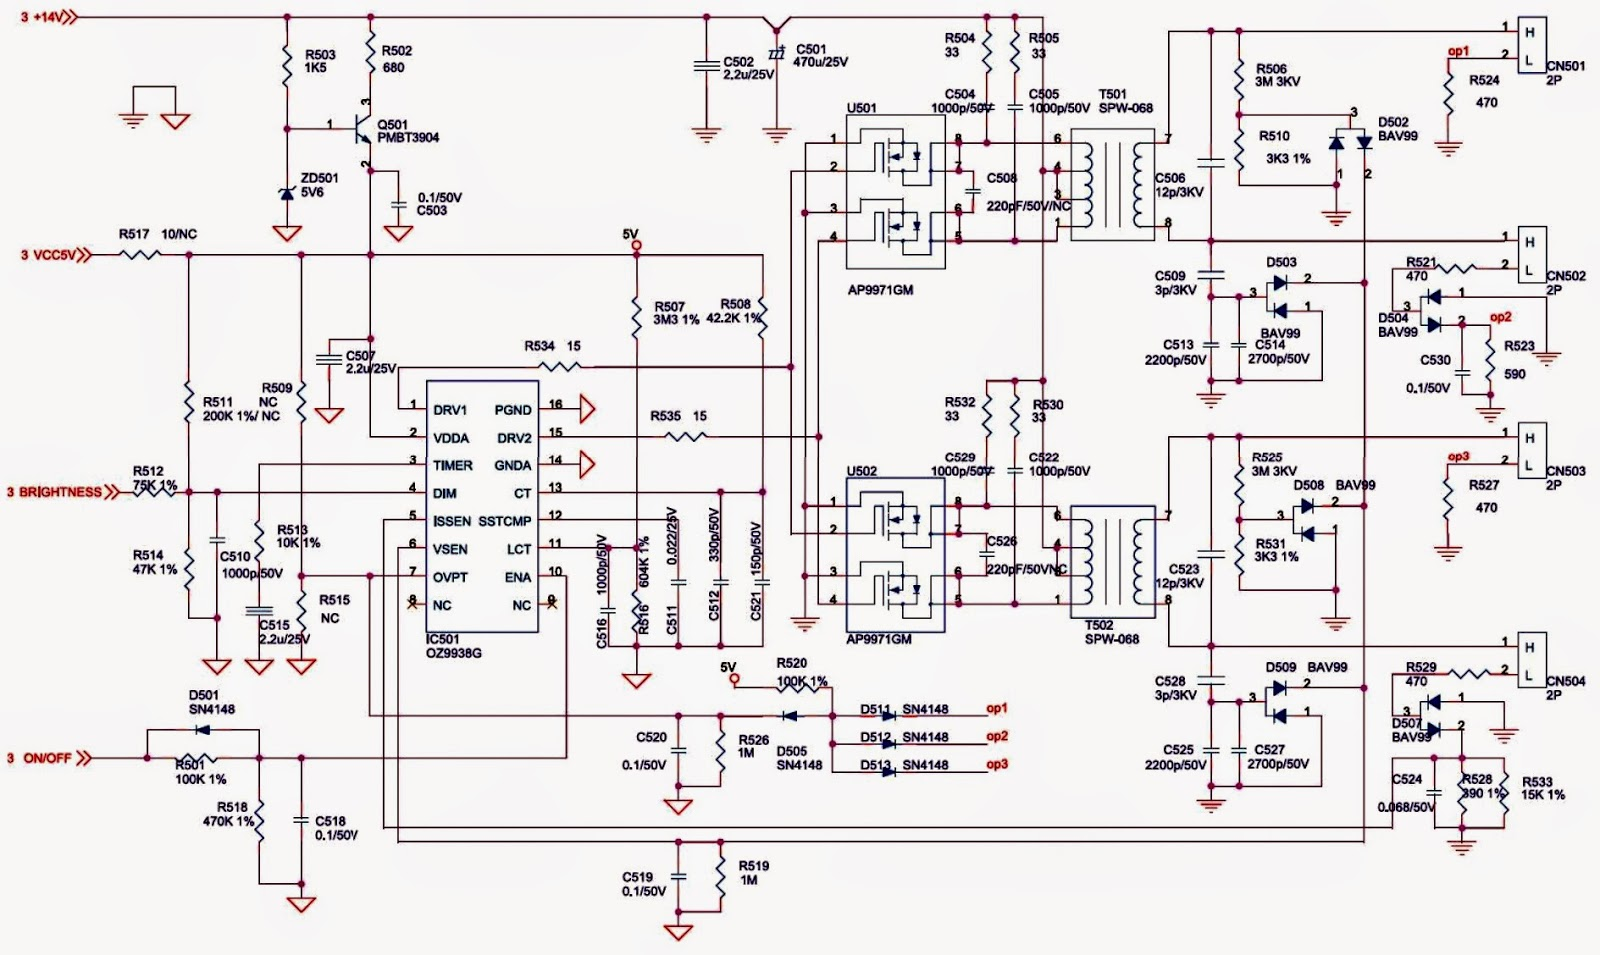 Gl1500 Lcd Wiring Diagram Automotive Radio Wire Diagrams Rh 1 Crocodilecruisedarwin Com Honda Goldwing 1500